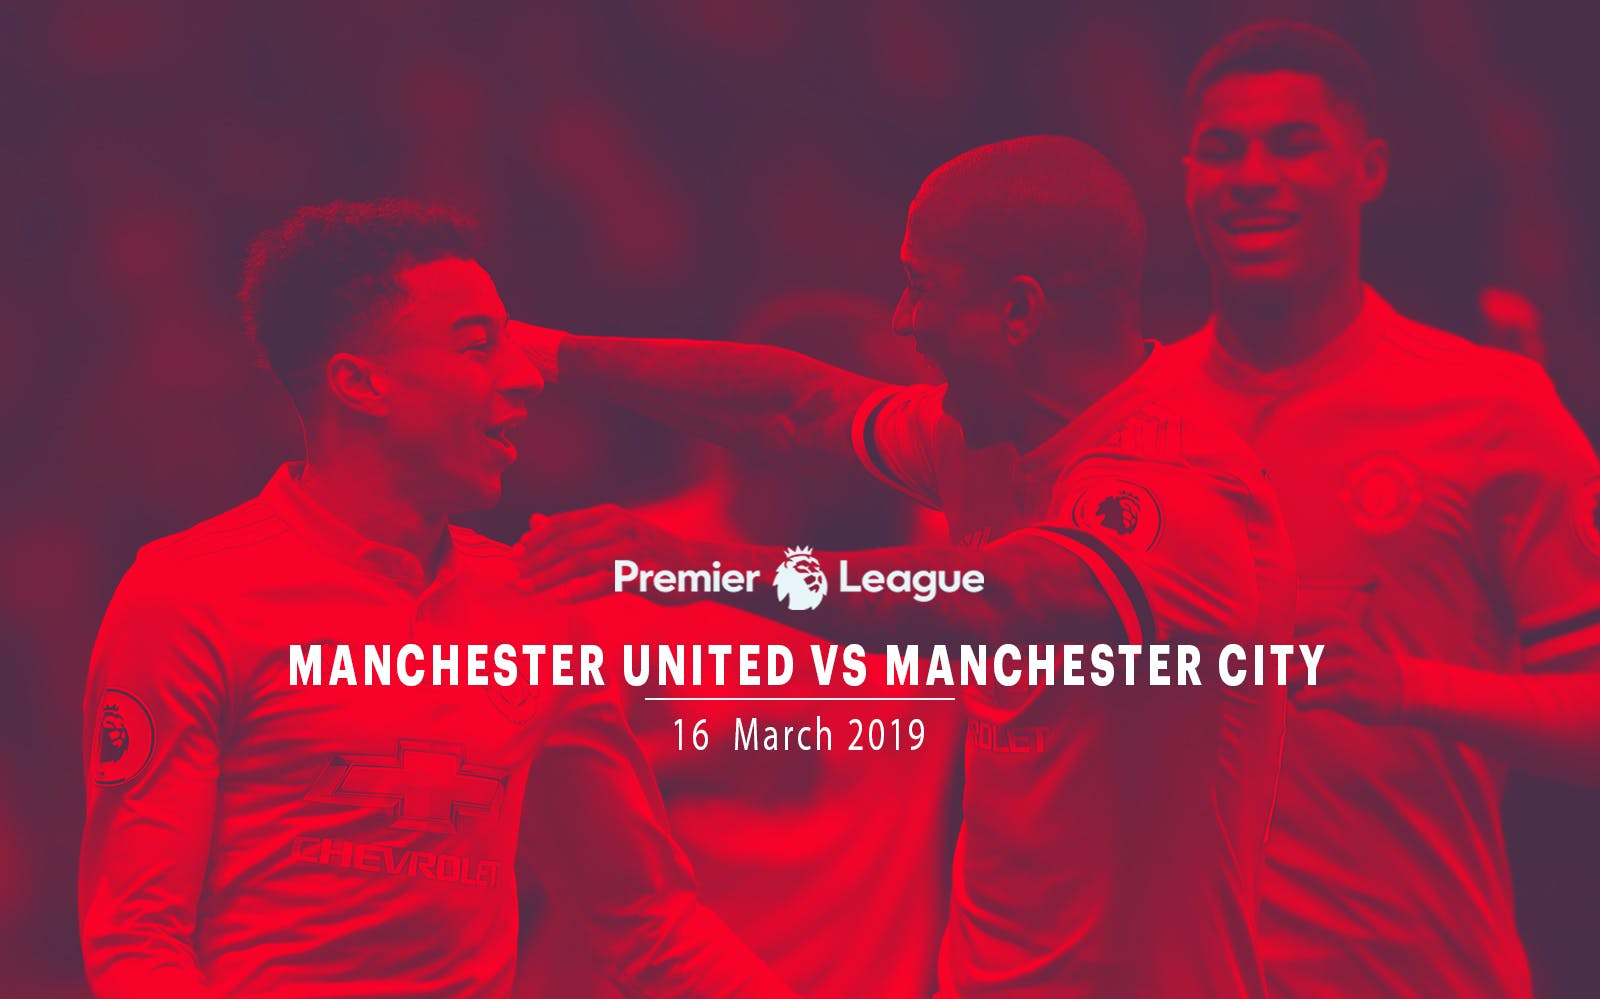 Manchester United vs Manchester City - 16th Mar'19